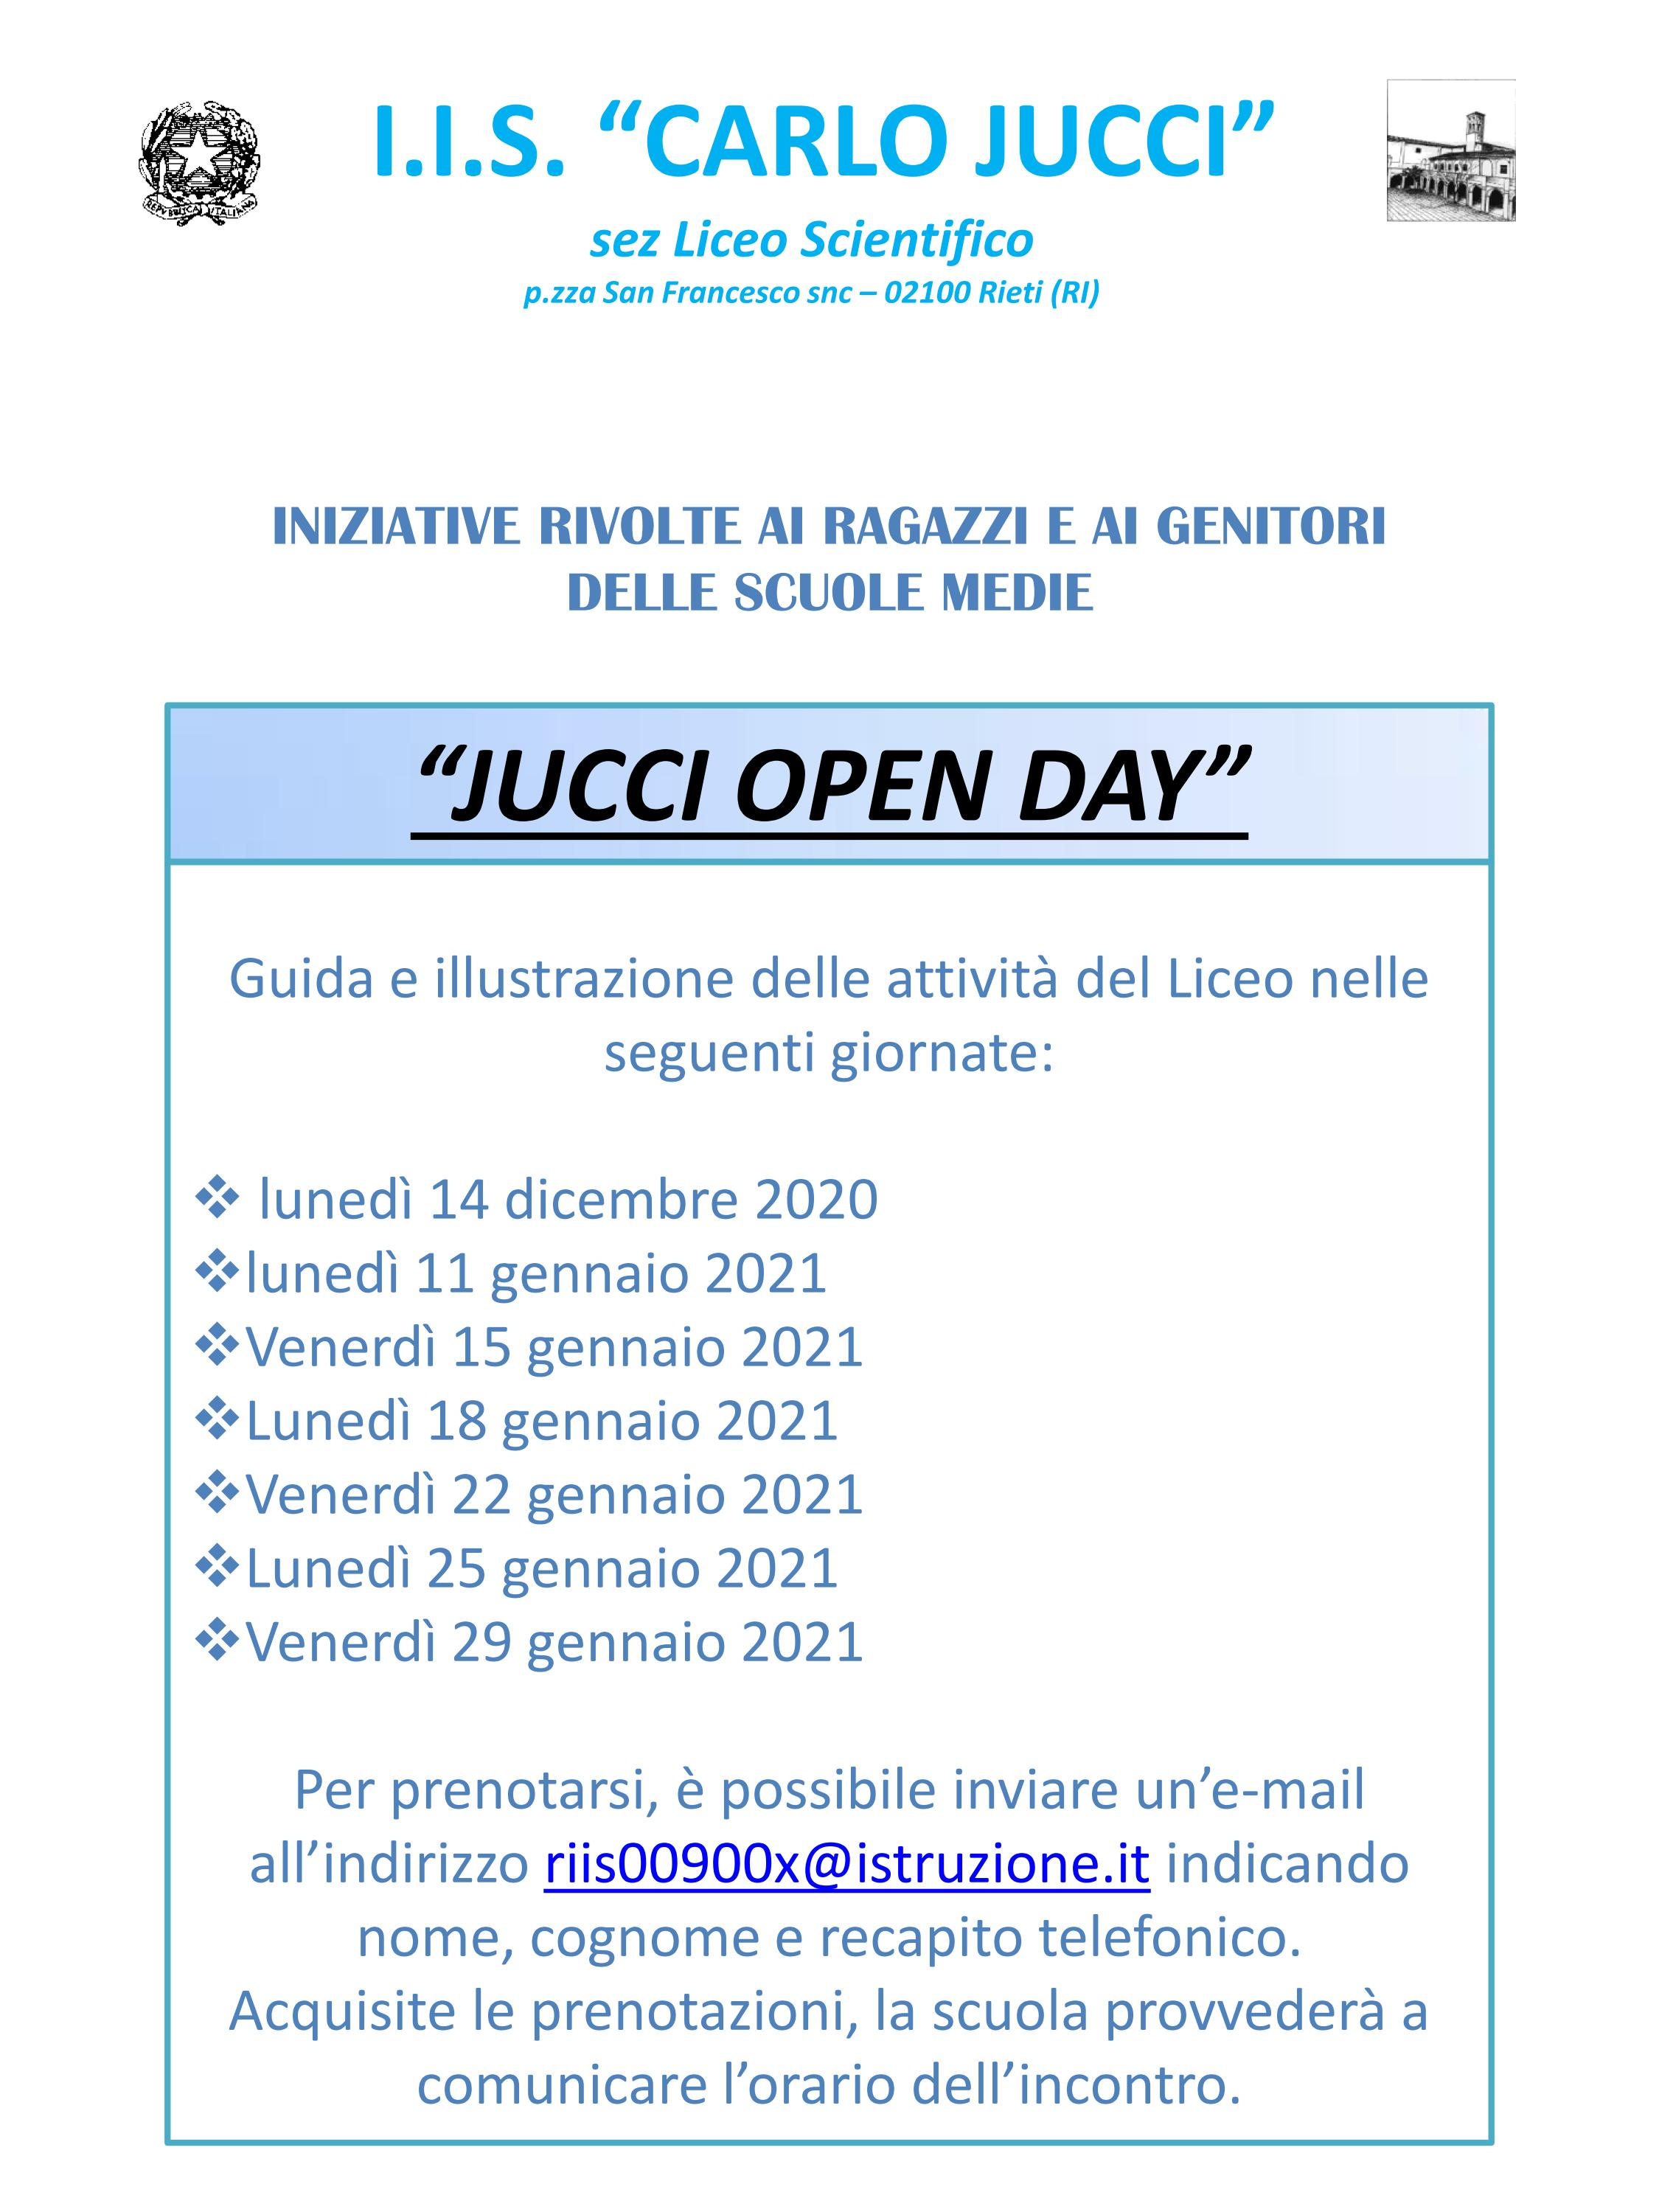 OPEN DAY JUCCI 2020 2021